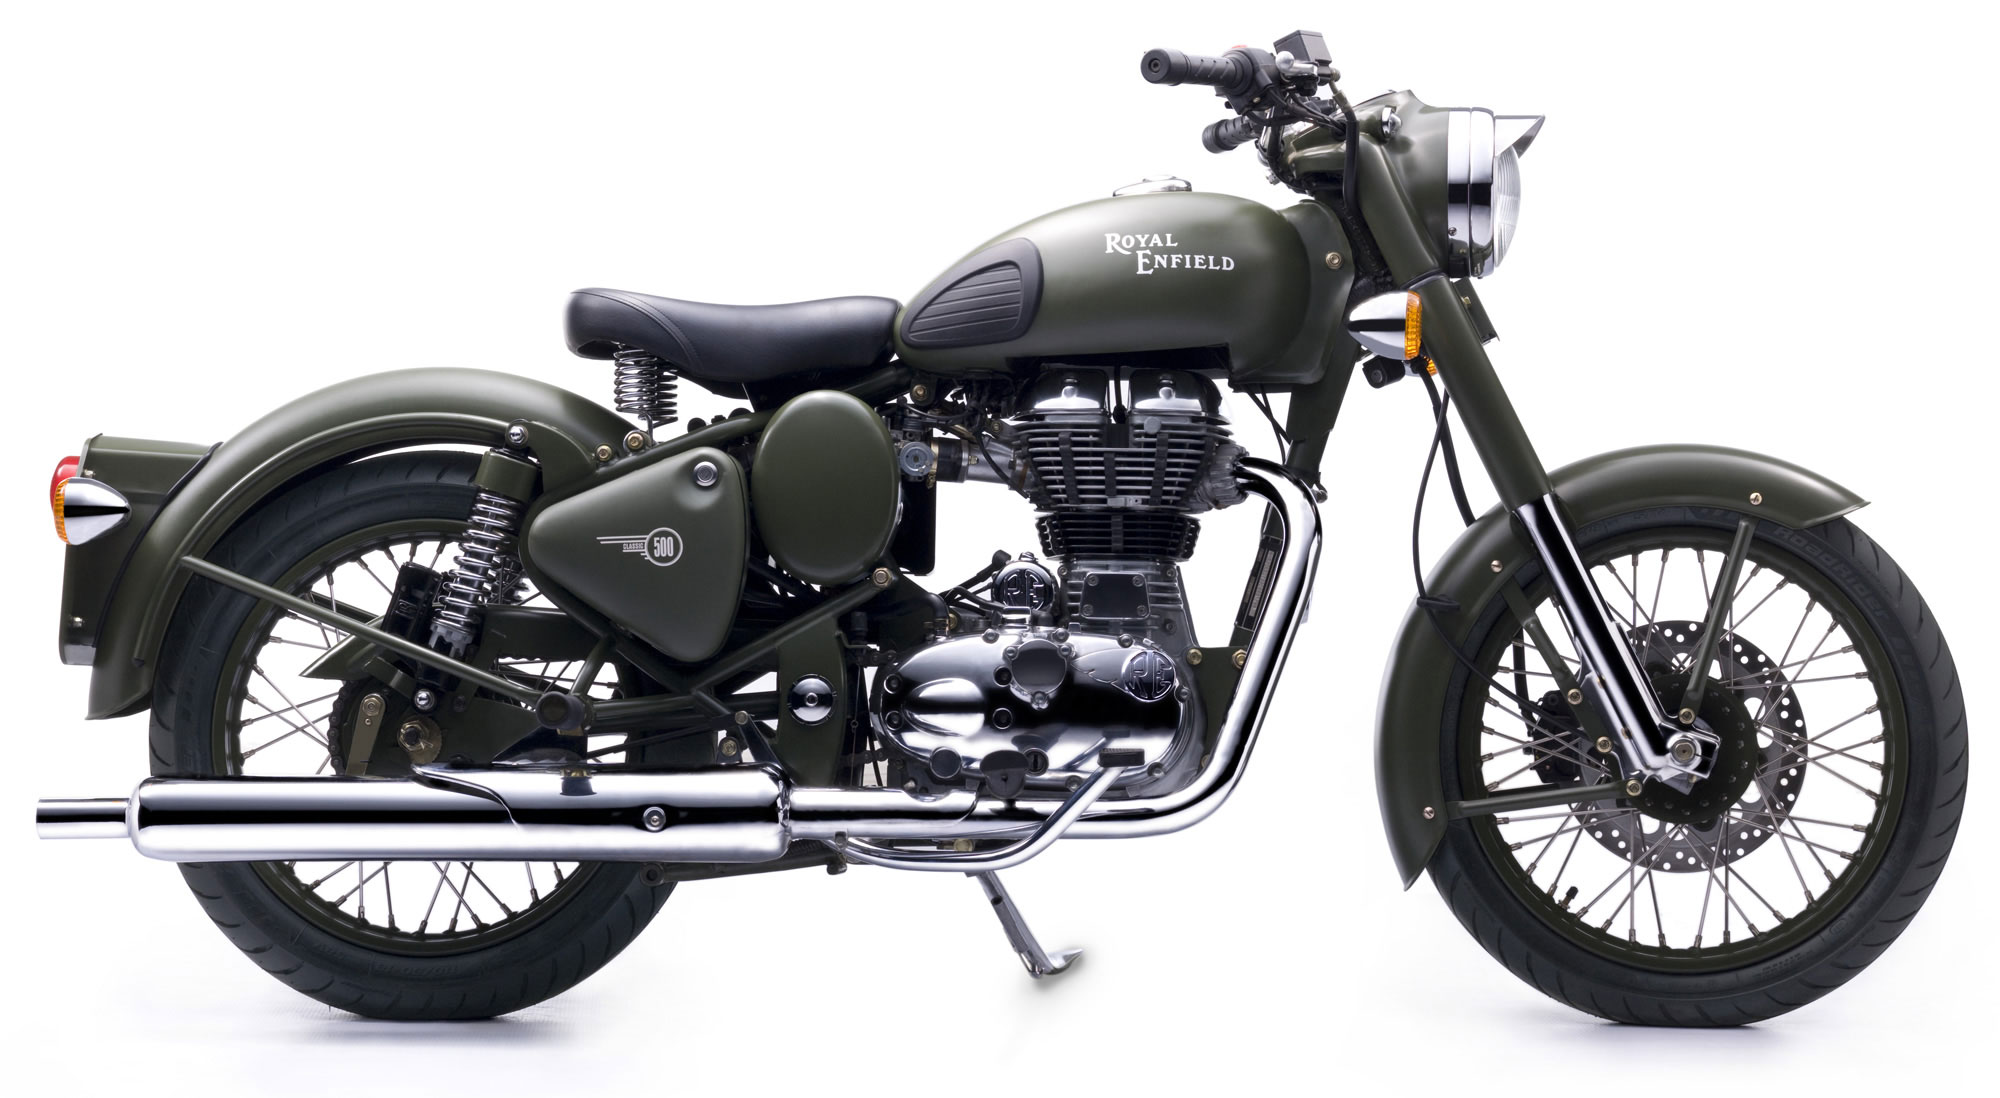 Royal Enfield Bullet 350 Army 2002 images #123580